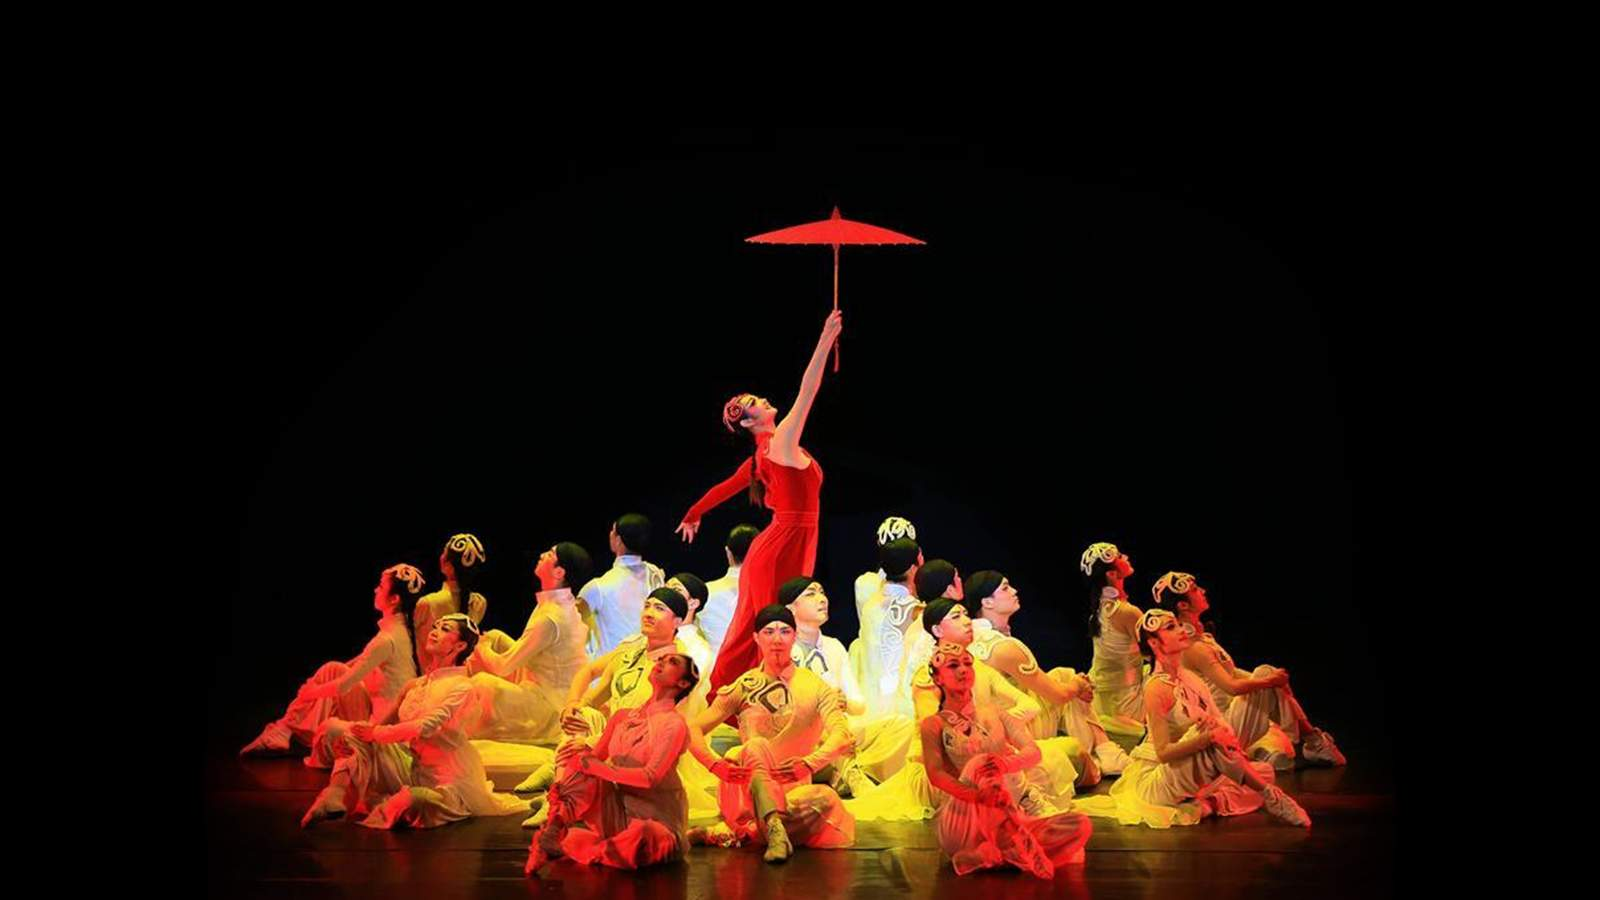 Shen Yun Performing Arts (Rescheduled from 3/28/2020, 1/23/2021)